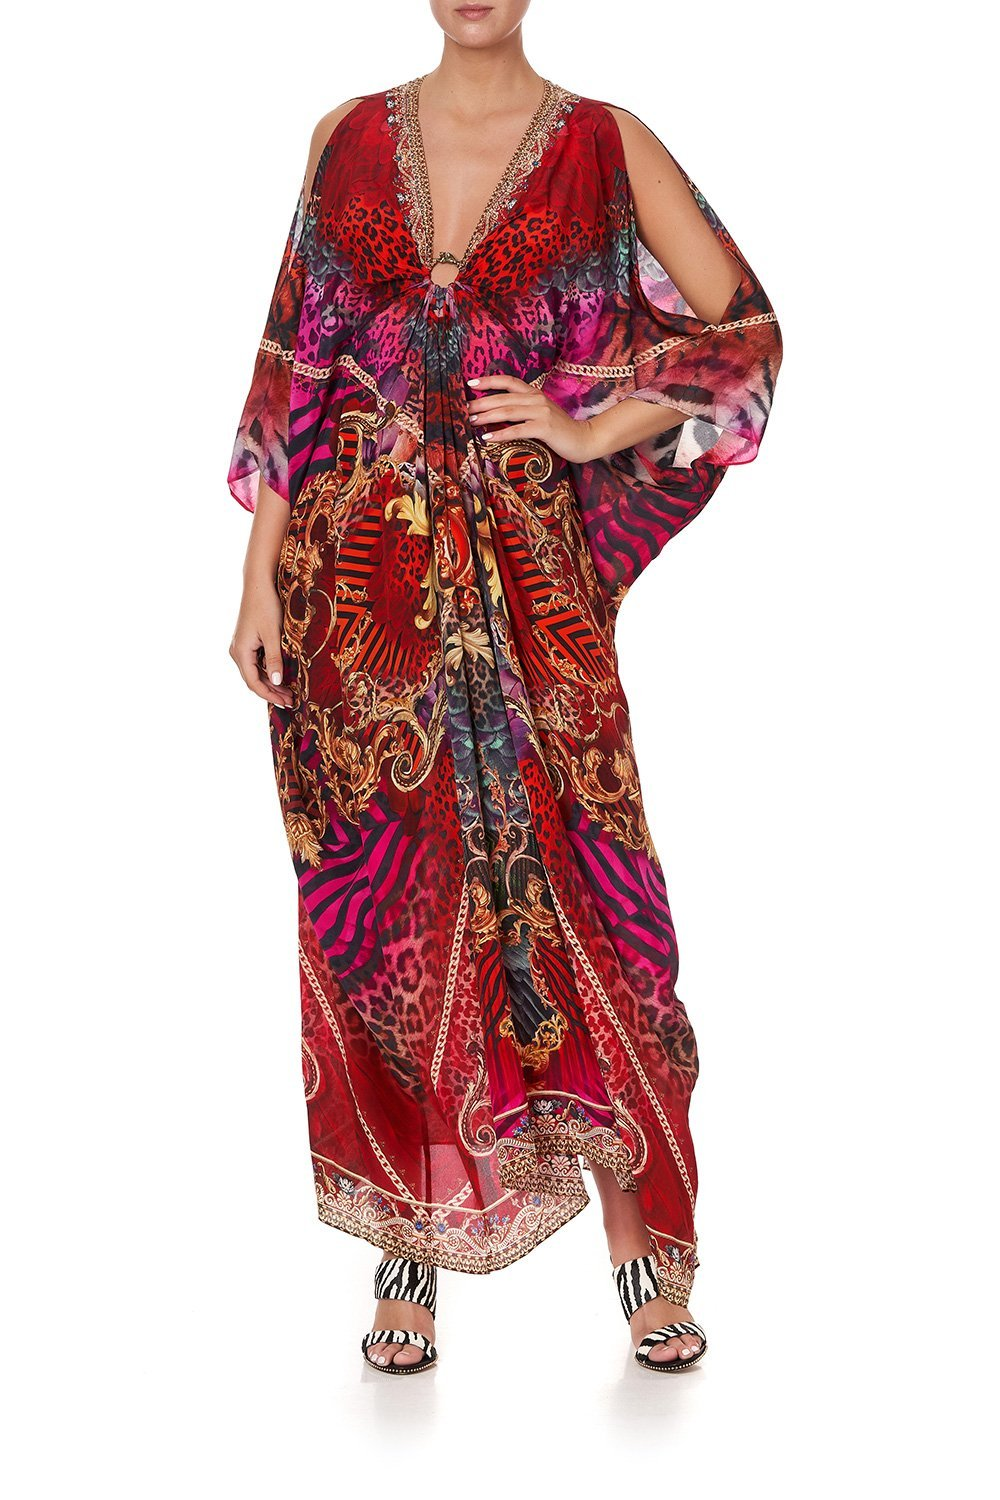 SPLIT SLEEVE KAFTAN WITH HARDWARE SLAVE TO THE RHYTHM